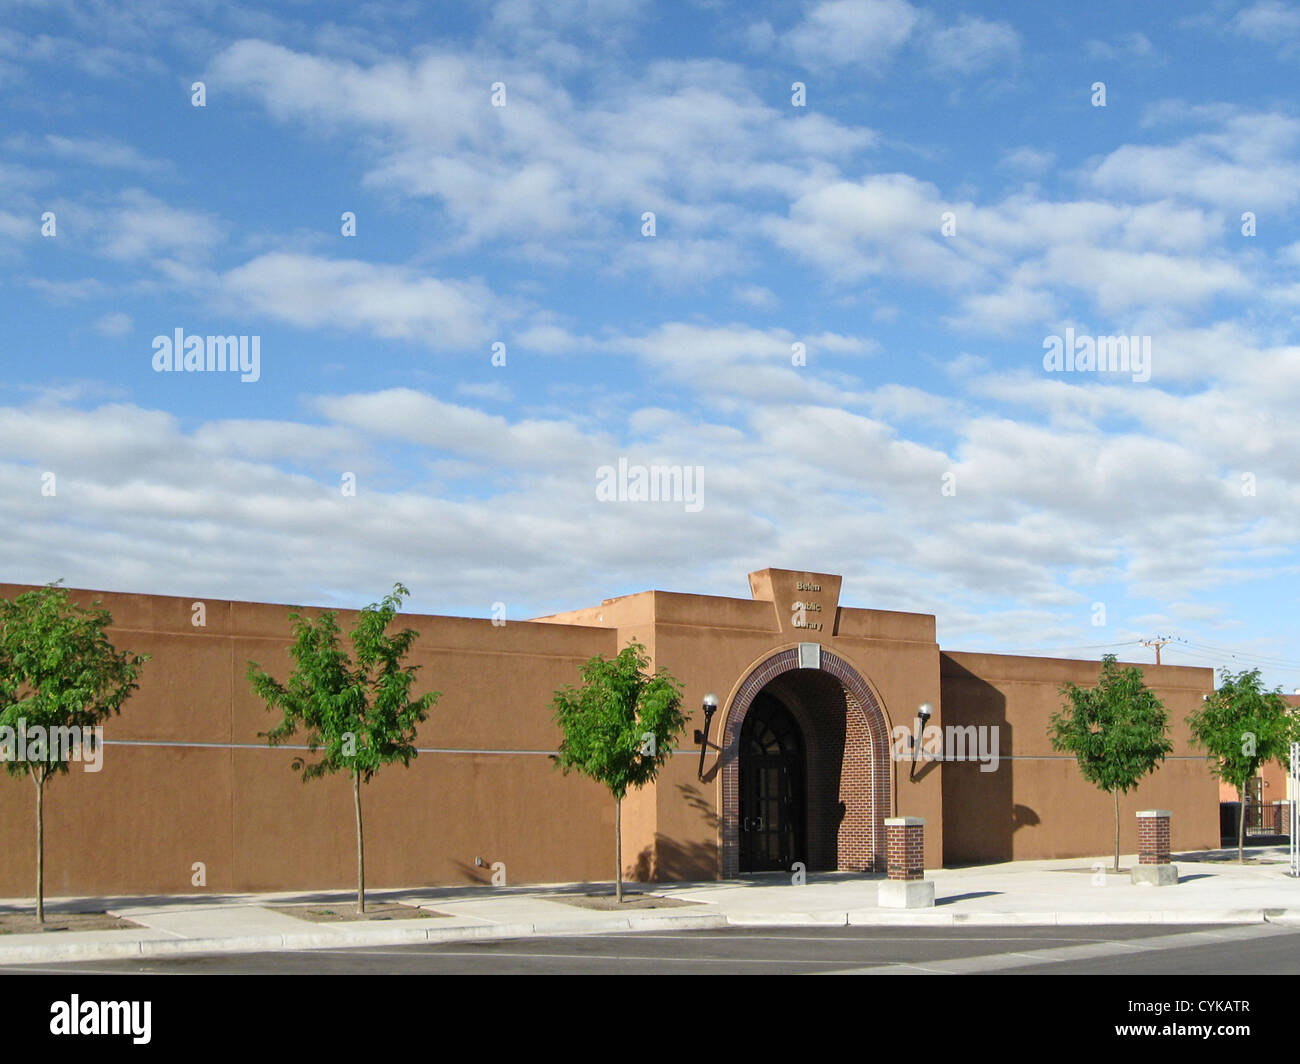 Belen (New Mexico) Public Library, located at 333 Becker Avenue. - Stock Image